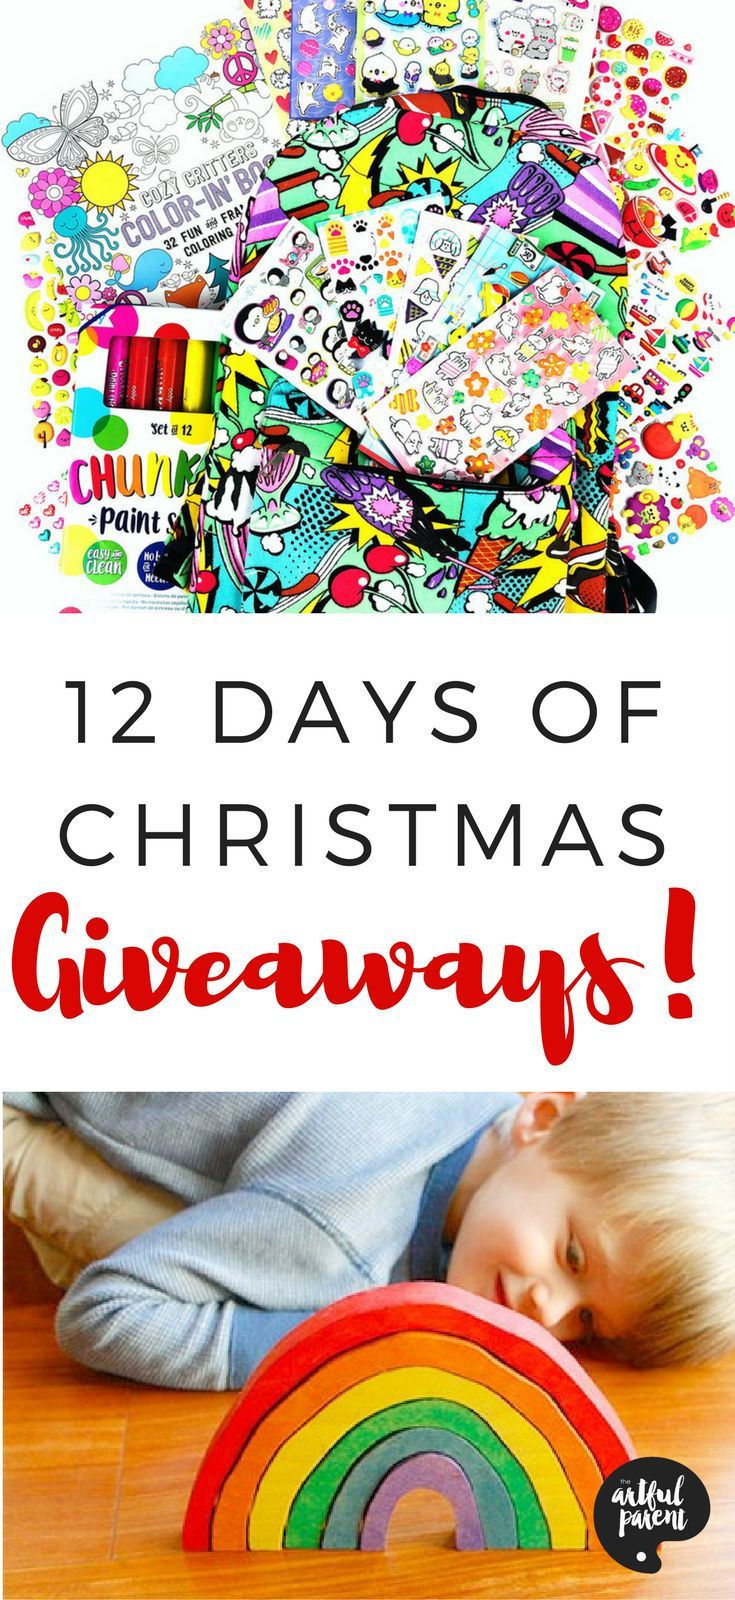 Christmas Giveaways For Kids.12 Days Of Christmas Giveaways Rockin Art For Kids